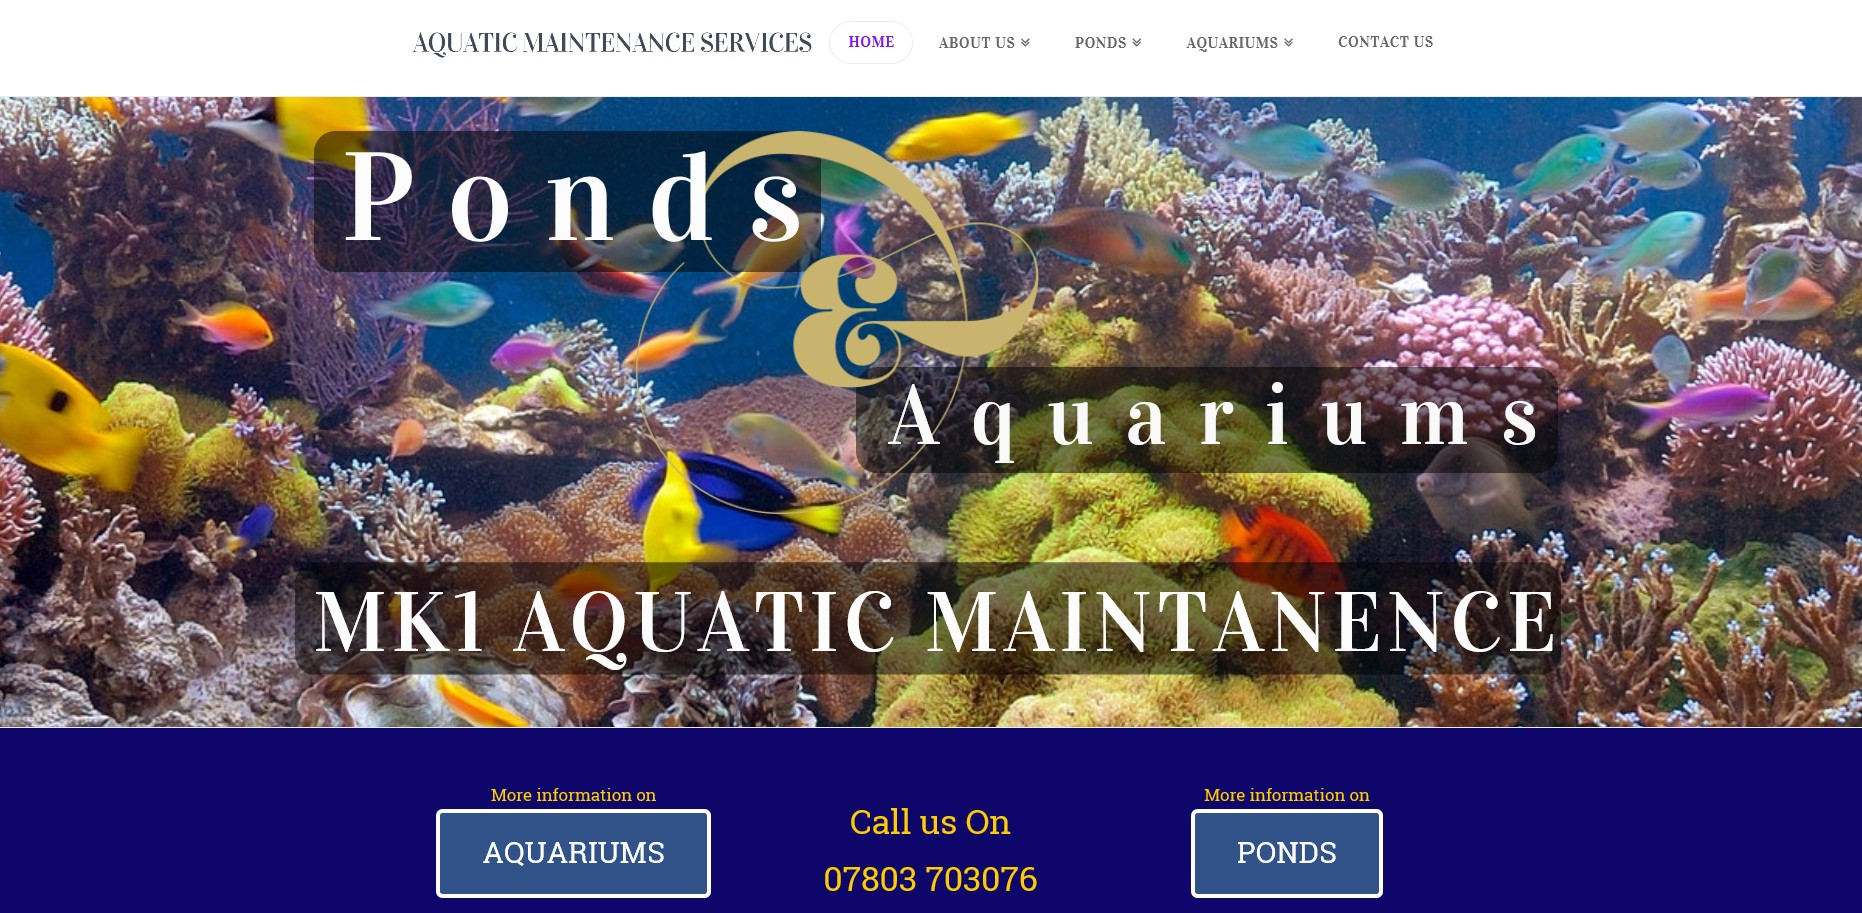 Mk1 Aquatic Maintenance Holmes of Heathrow Website By T900 Website Design in Surrey